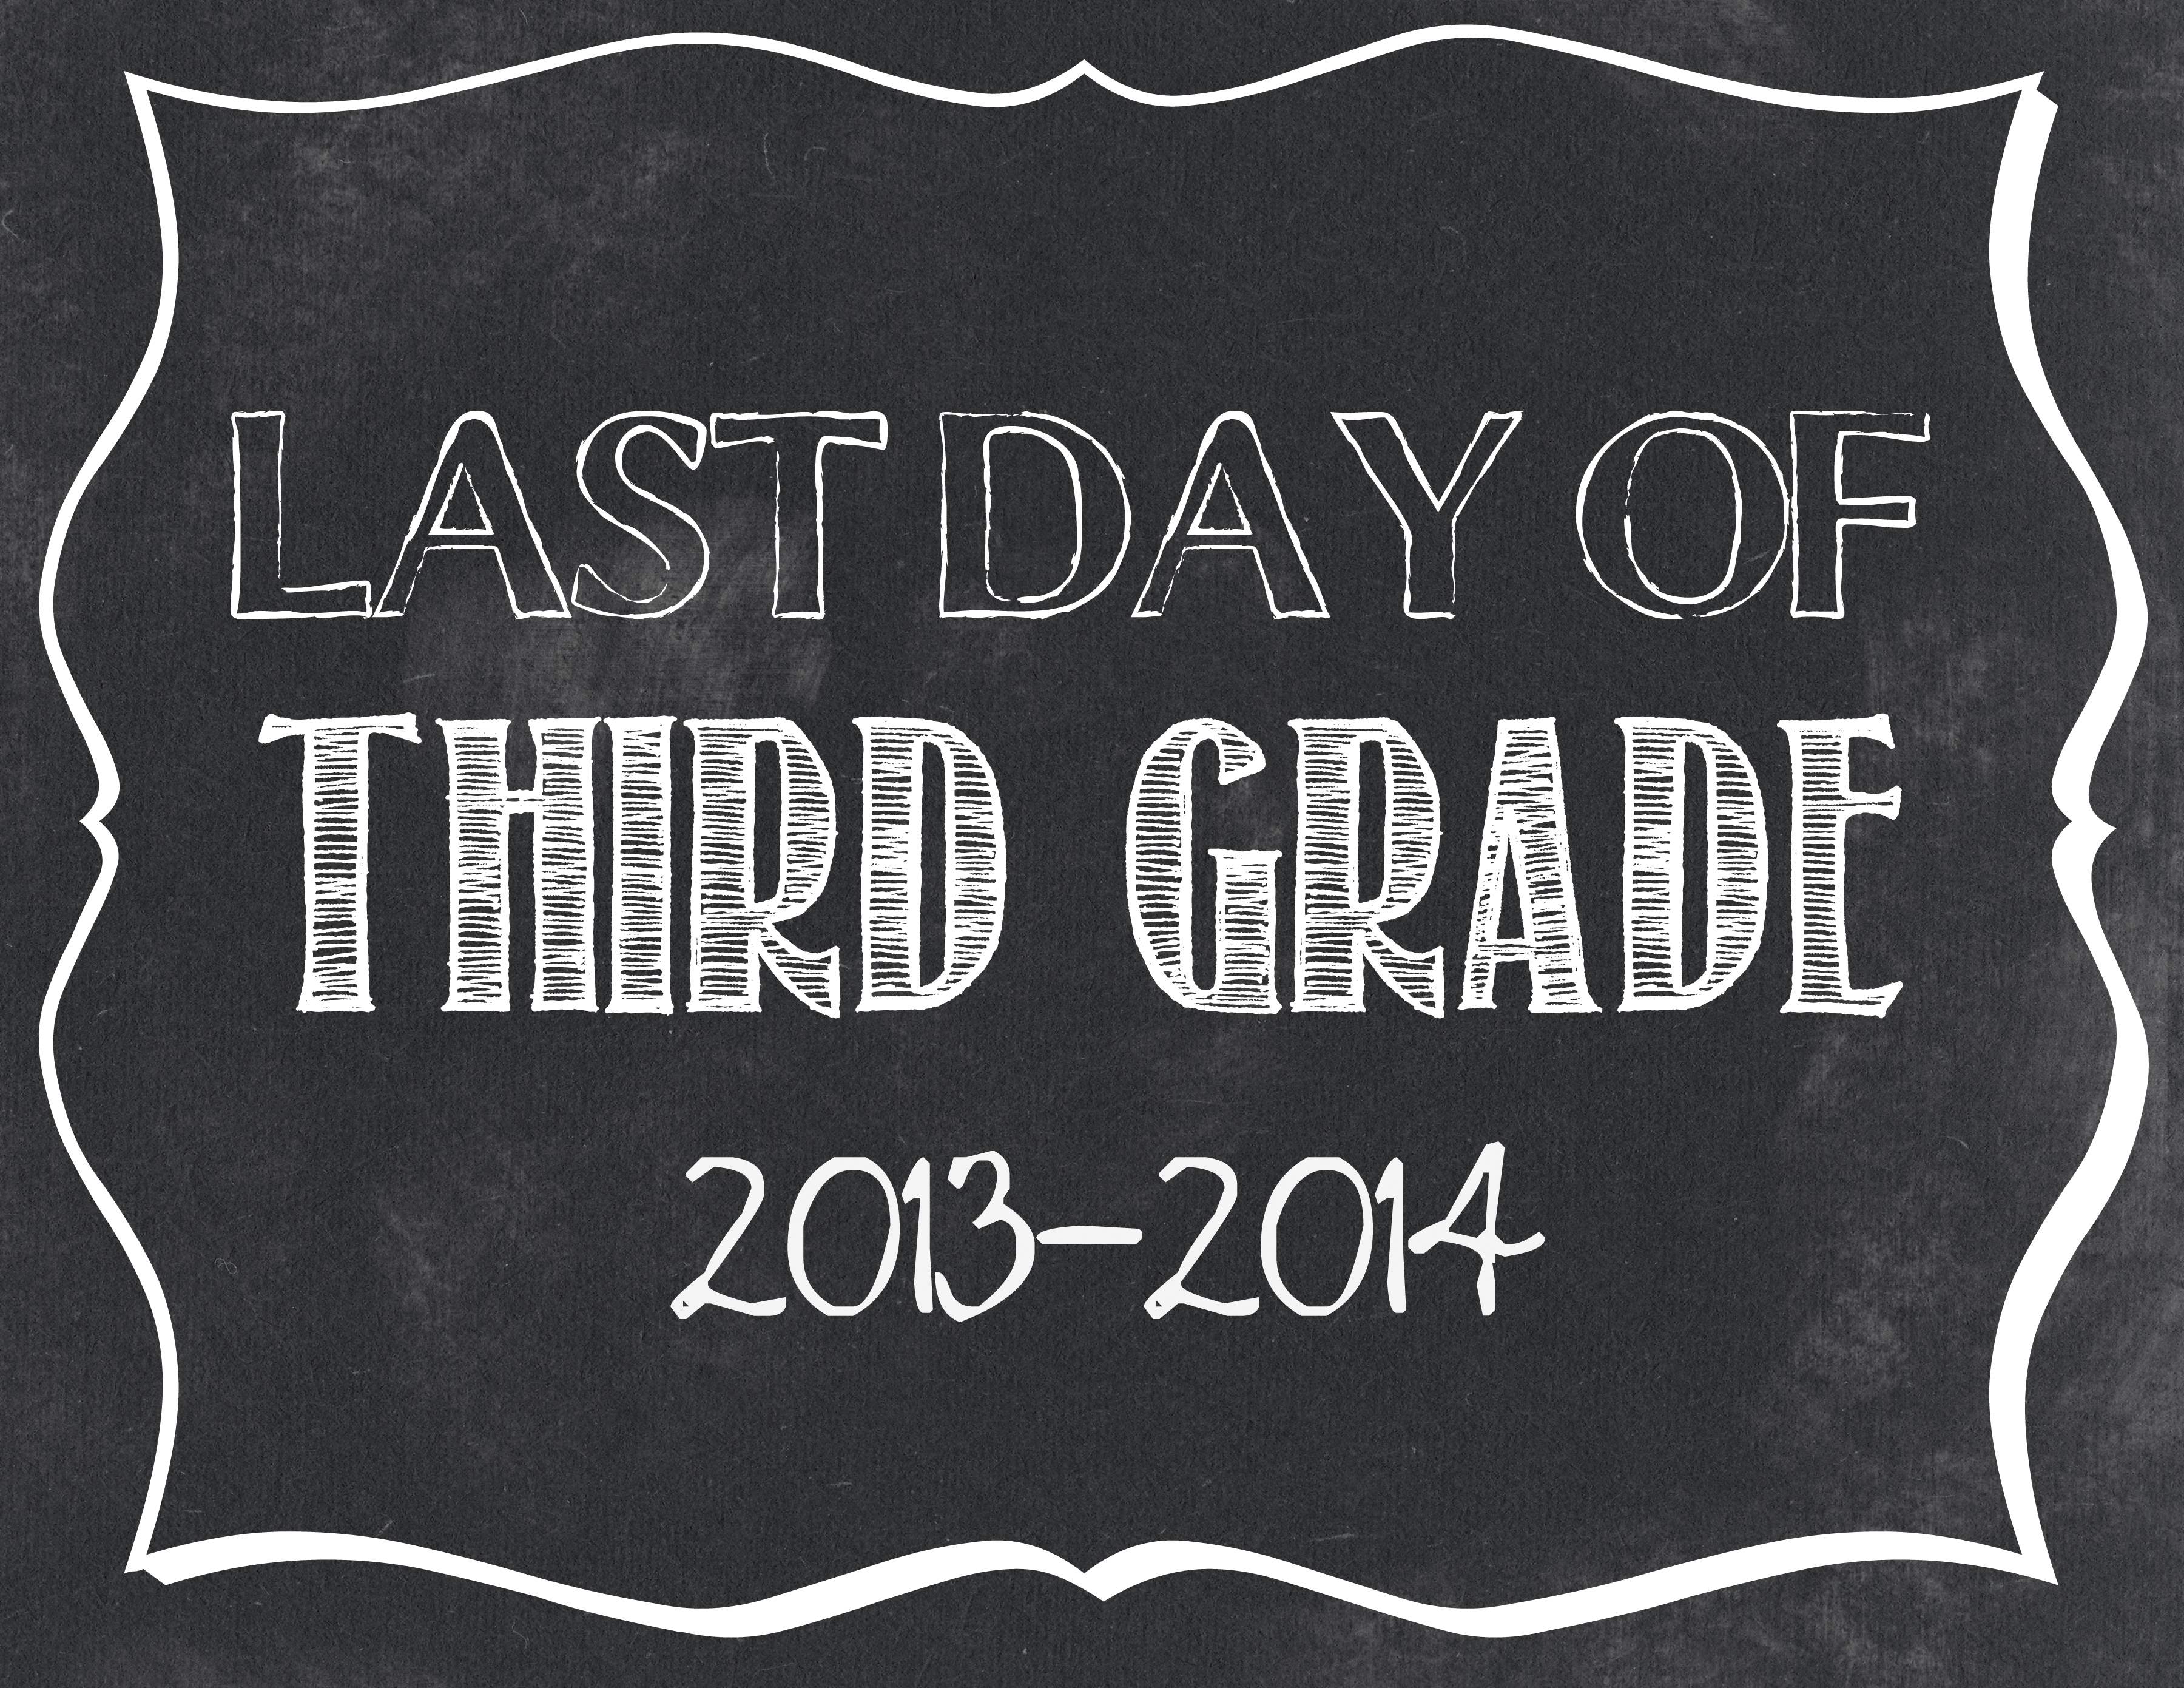 photo regarding Last Day of 2nd Grade Printable titled Final Working day of Higher education Printables